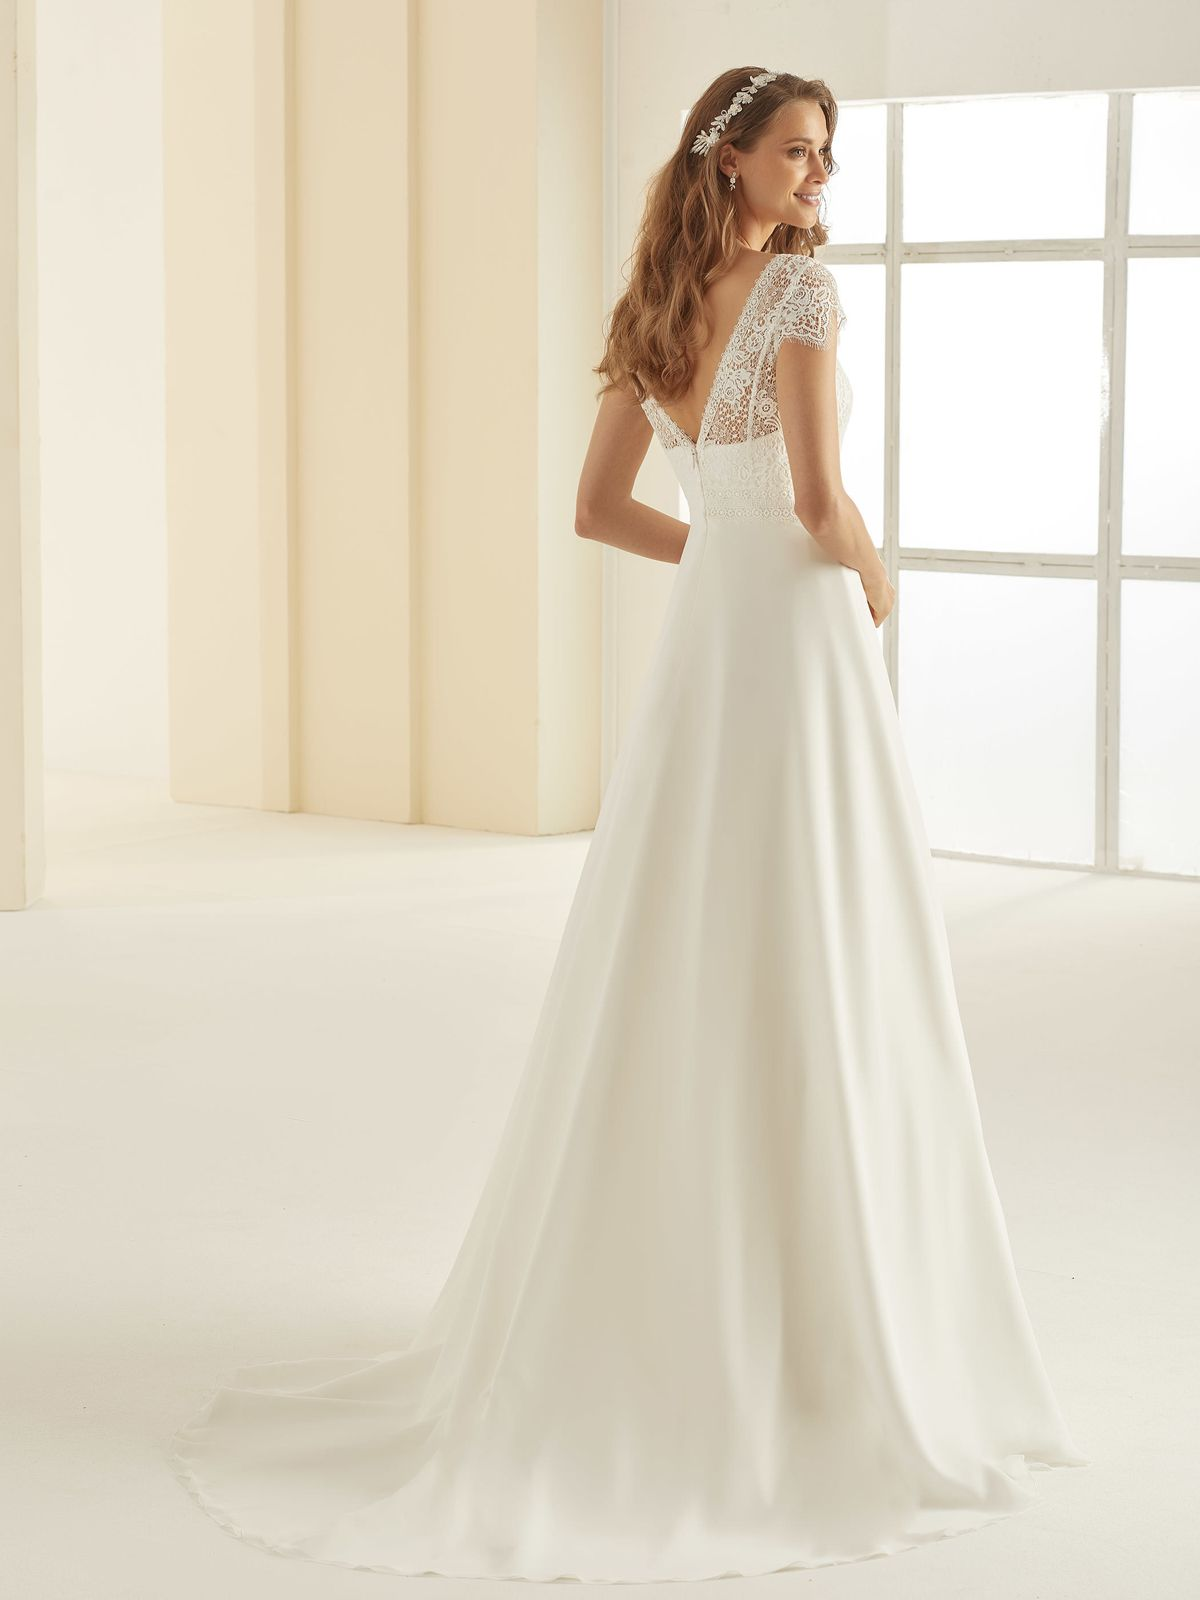 bianco-evento-bridal-dress-natalie-_3__2